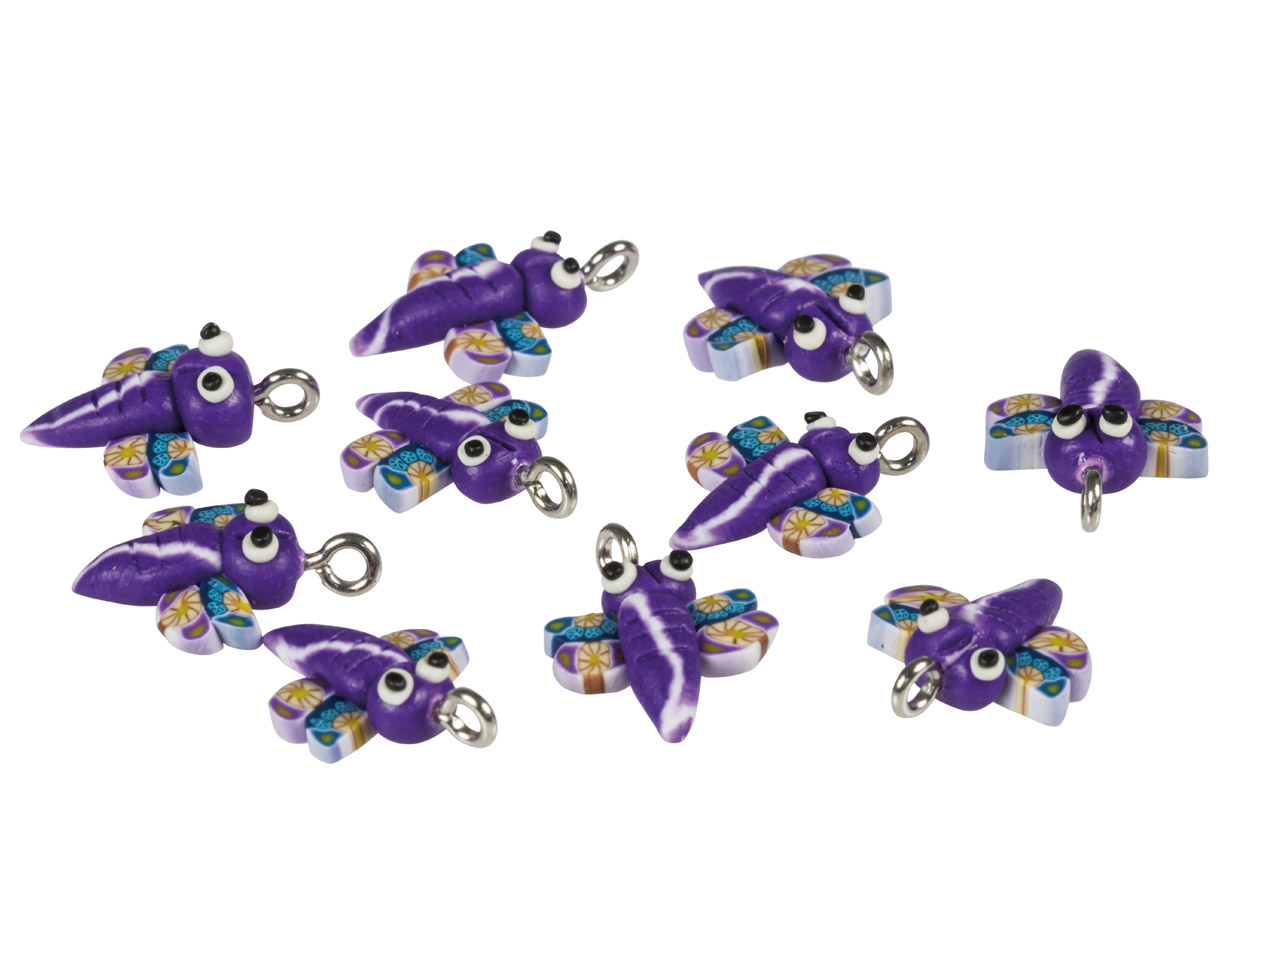 Polymer Clay Dragonfly Beads With  Loop, 13mm, Pack of 10